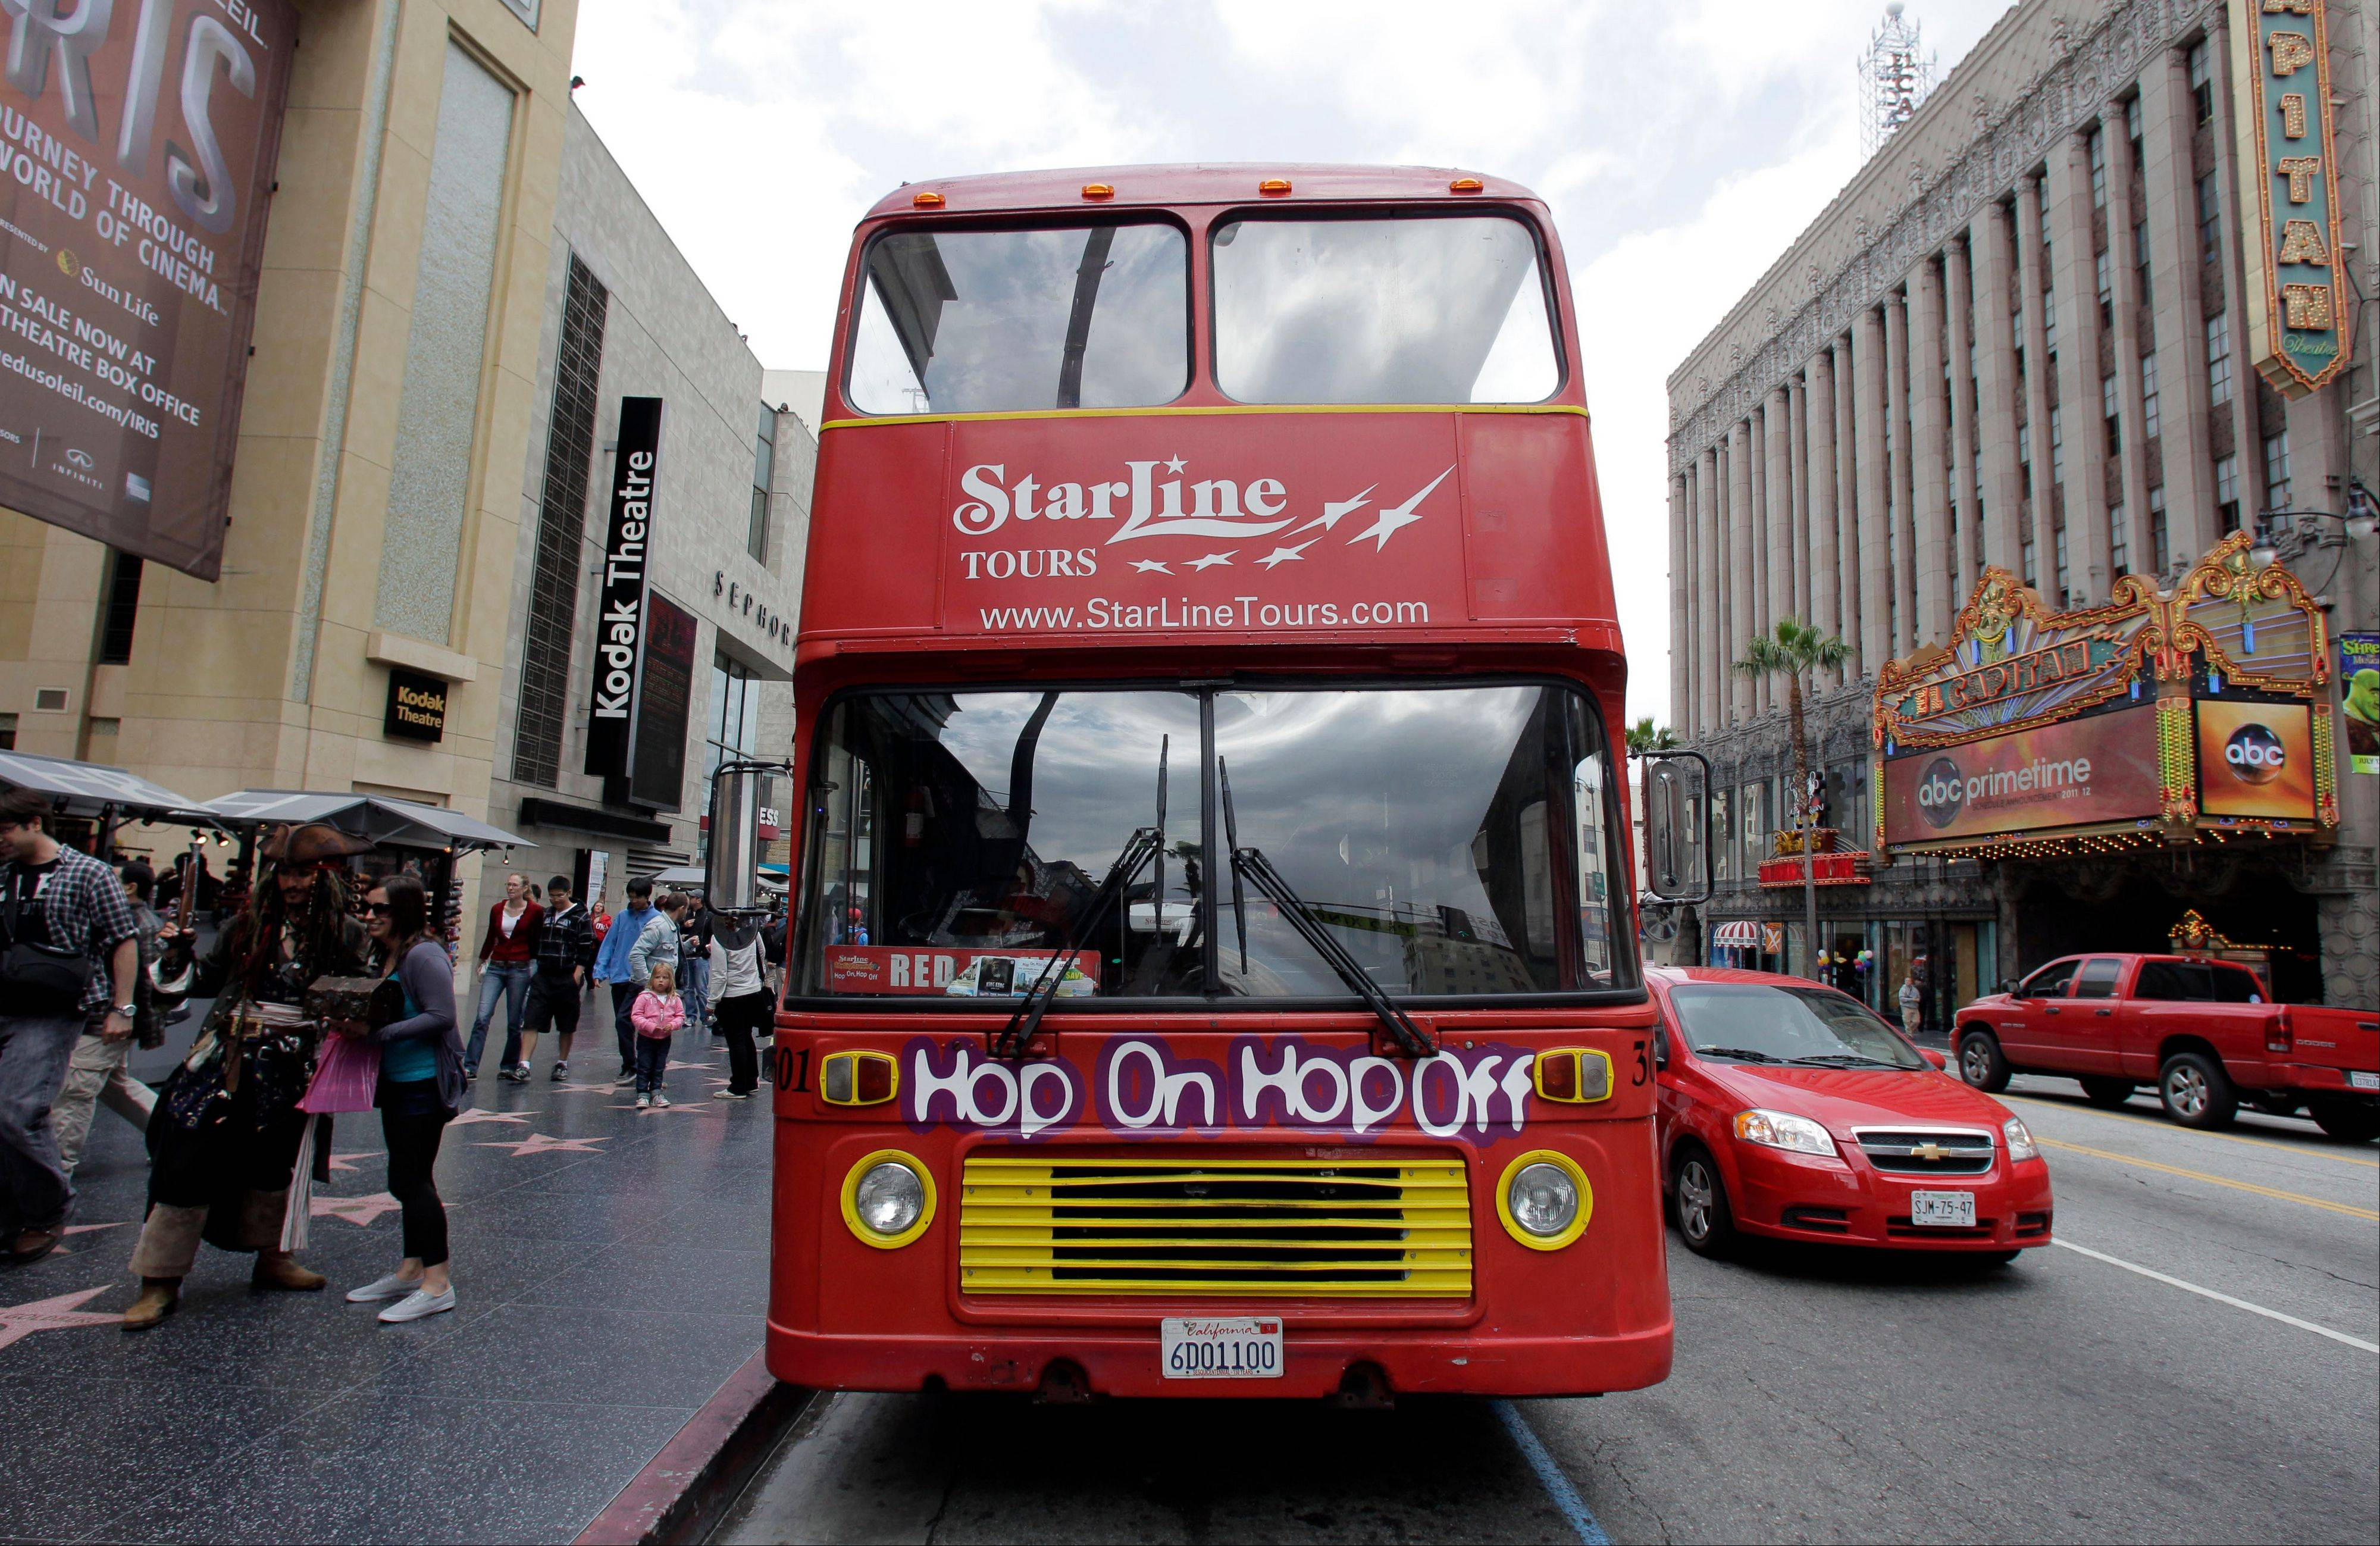 Dec 04, · I've been on hop on hop off buses before, but the Starline Tour was only okay. The pre-recorded audio was fairly boring, for a city with so much history there were often min with no commentary. The worst part was as we transferred between More. Thank S G. SarDav.4/4().